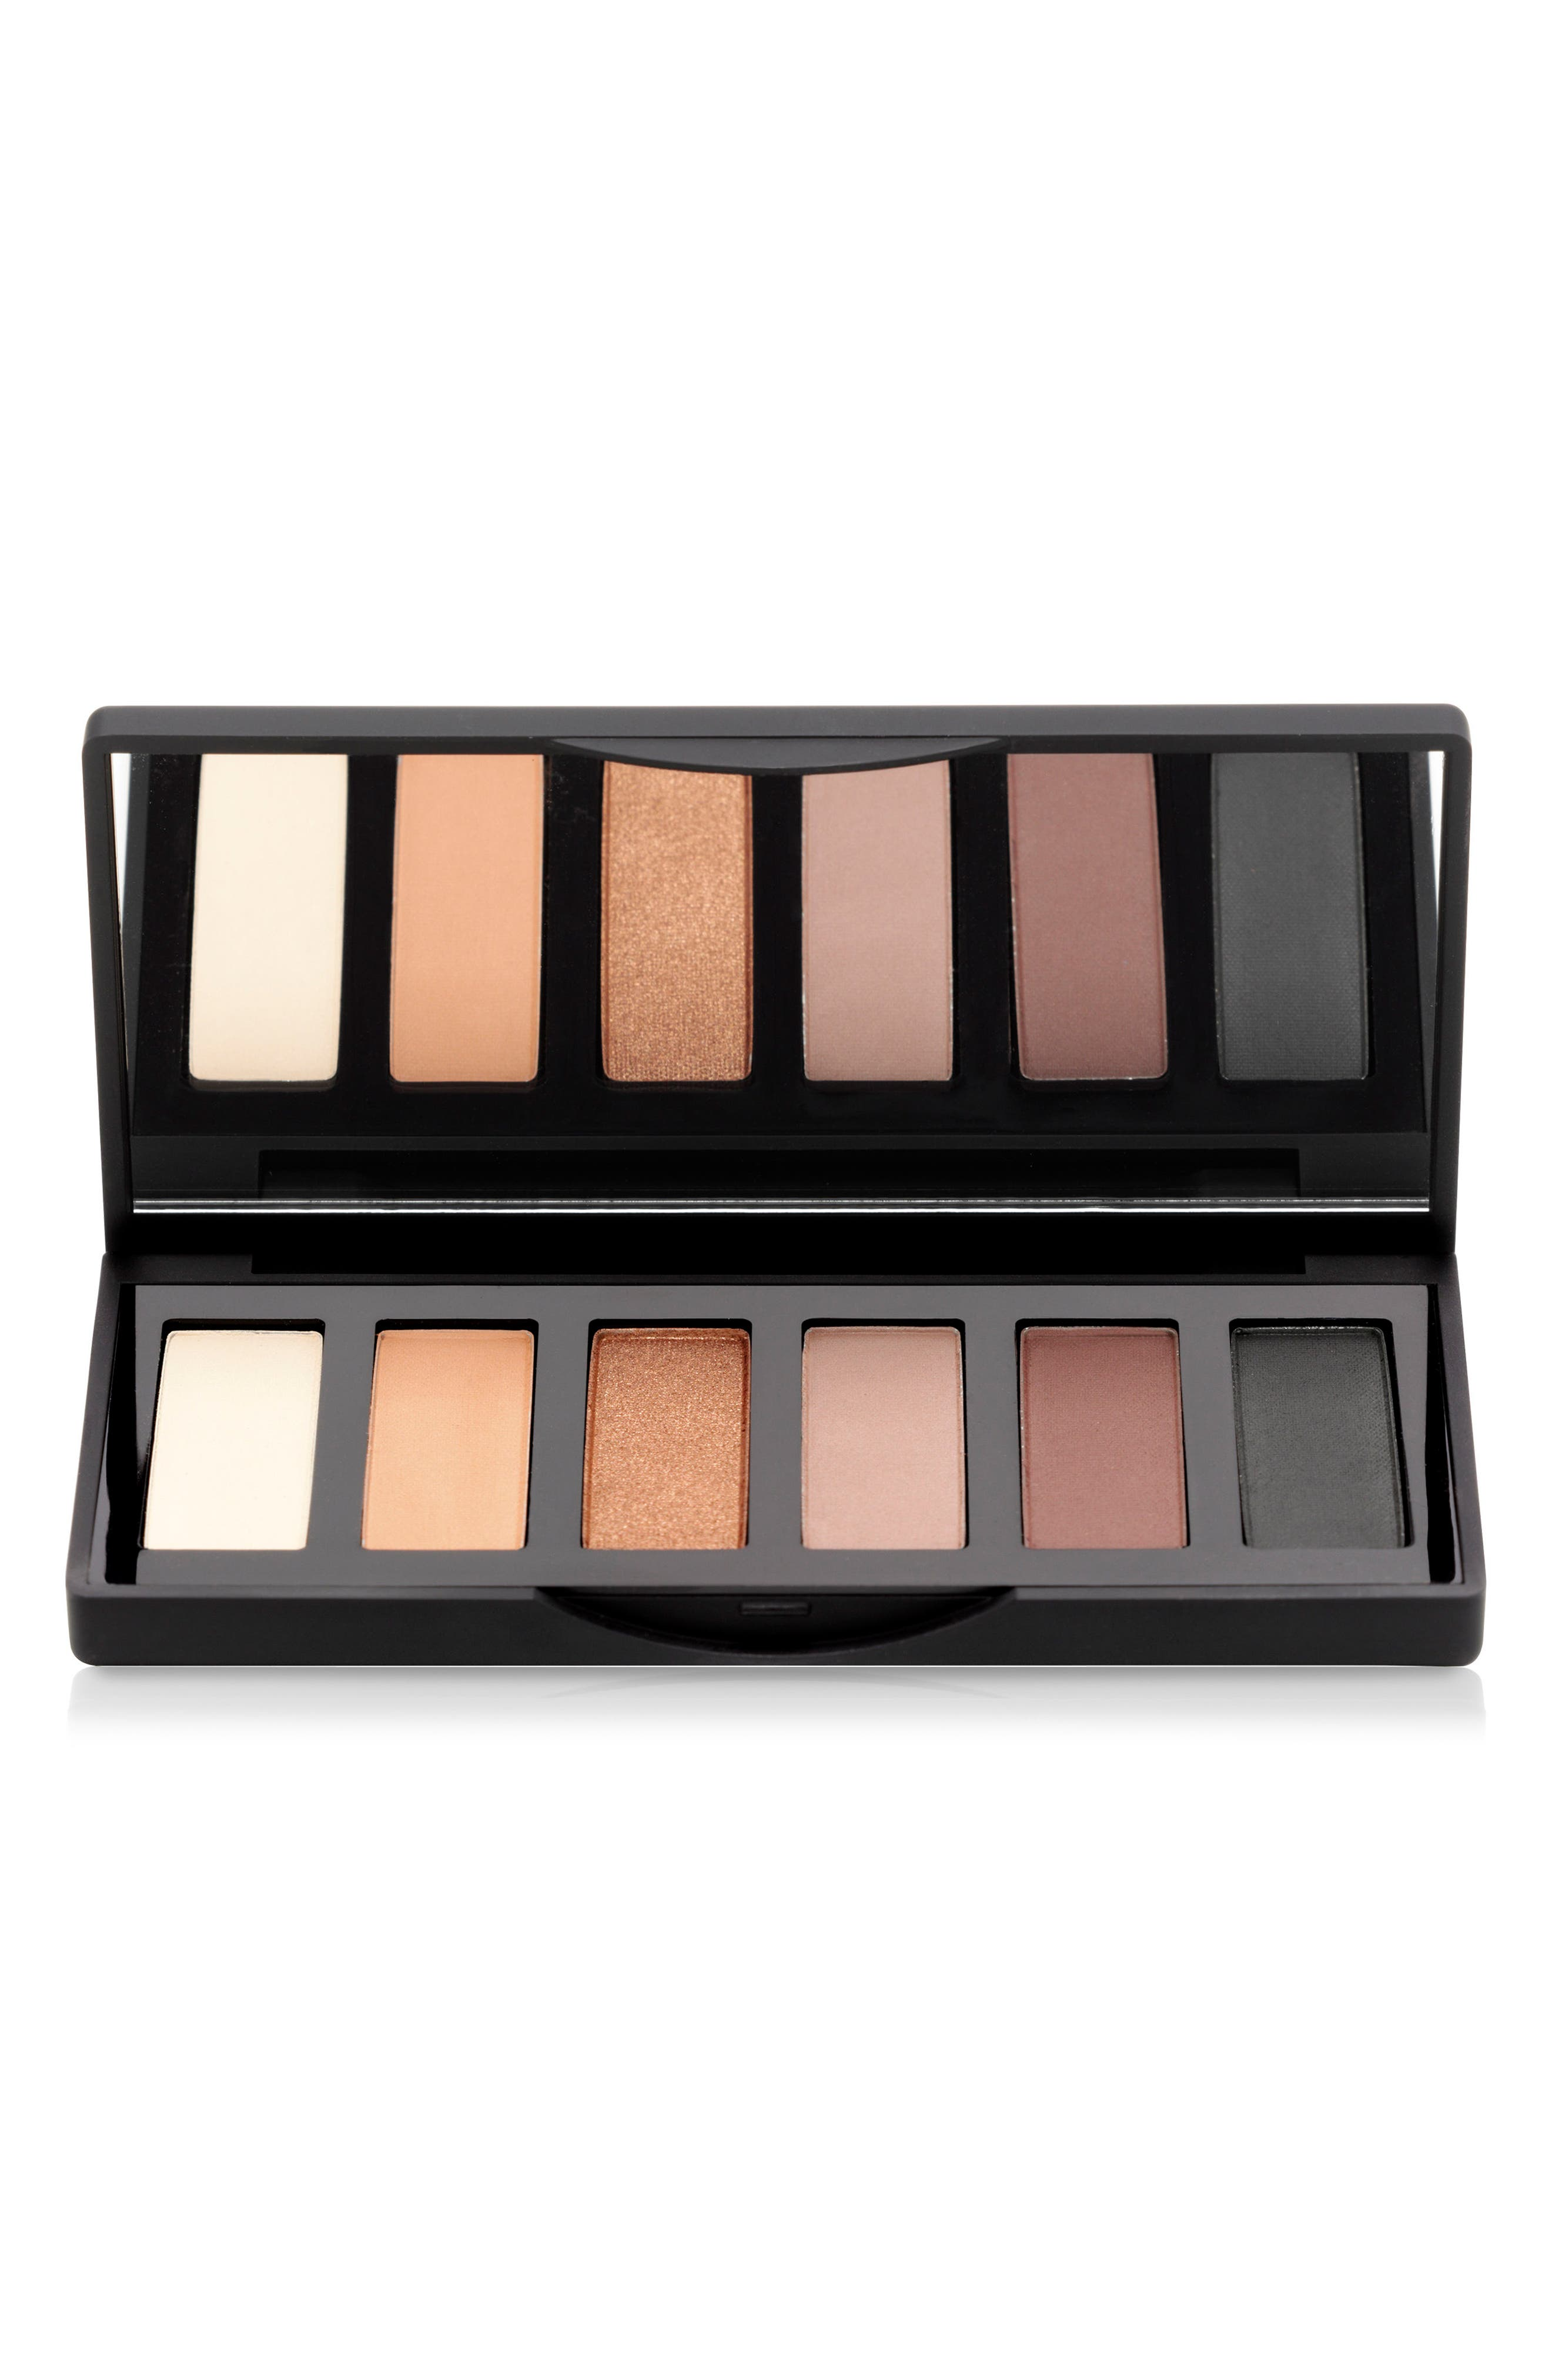 SPACE.NK.apothecary Rodial Smoky Eyeshadow Palette,                             Main thumbnail 1, color,                             NO COLOR